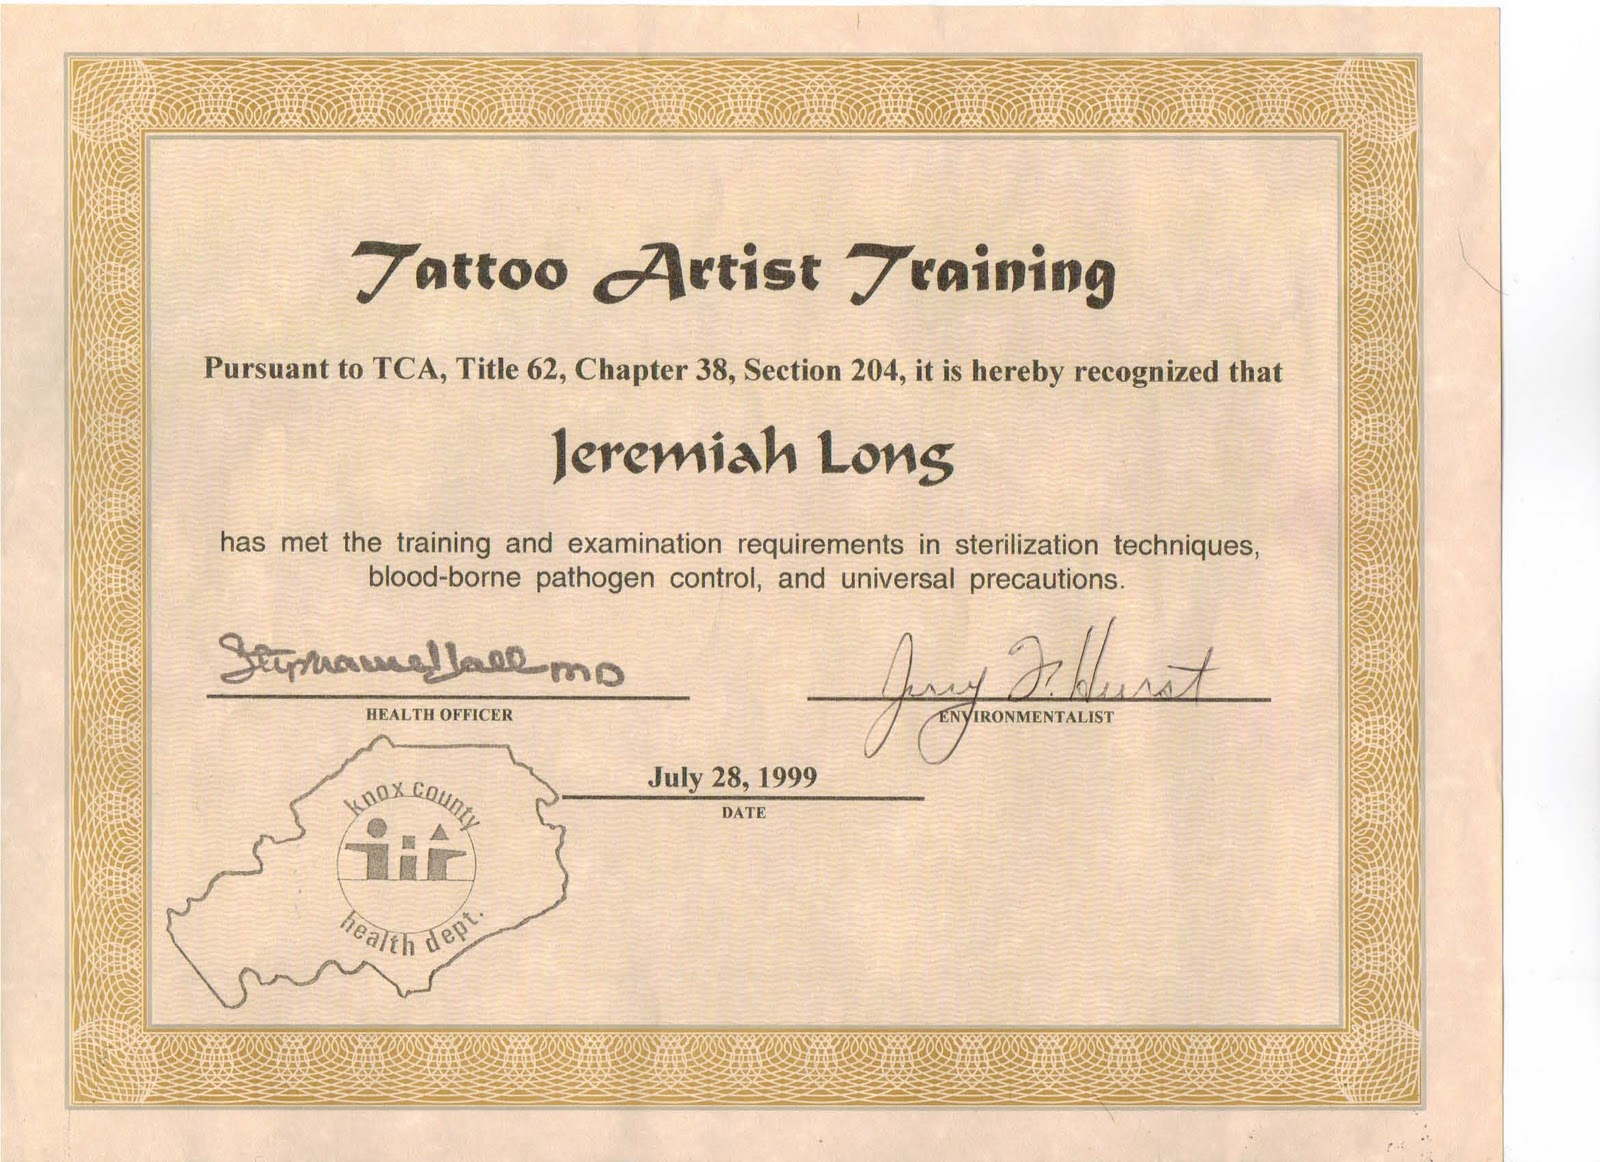 tattoo license pictures to pin on pinterest tattooskid